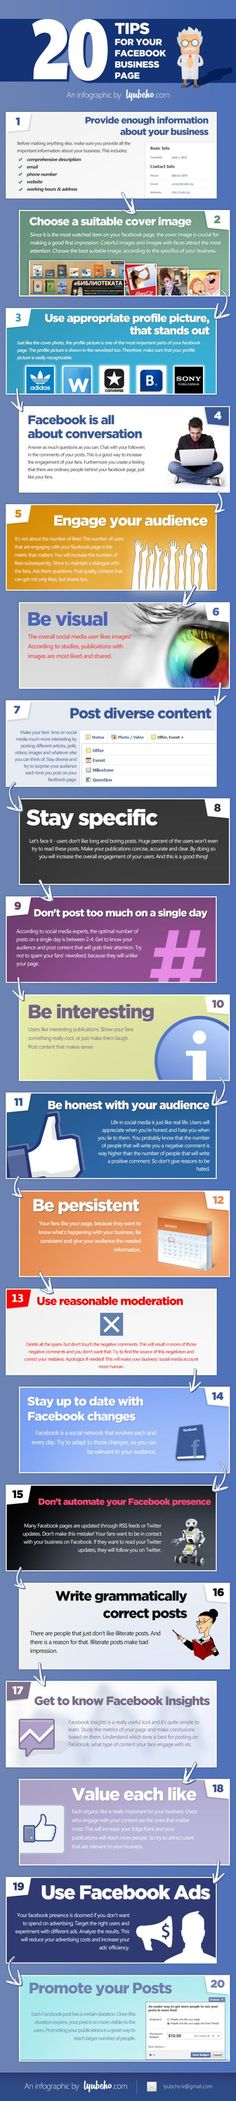 20 tips for your #Facebook business page #Infographic #socialmedia